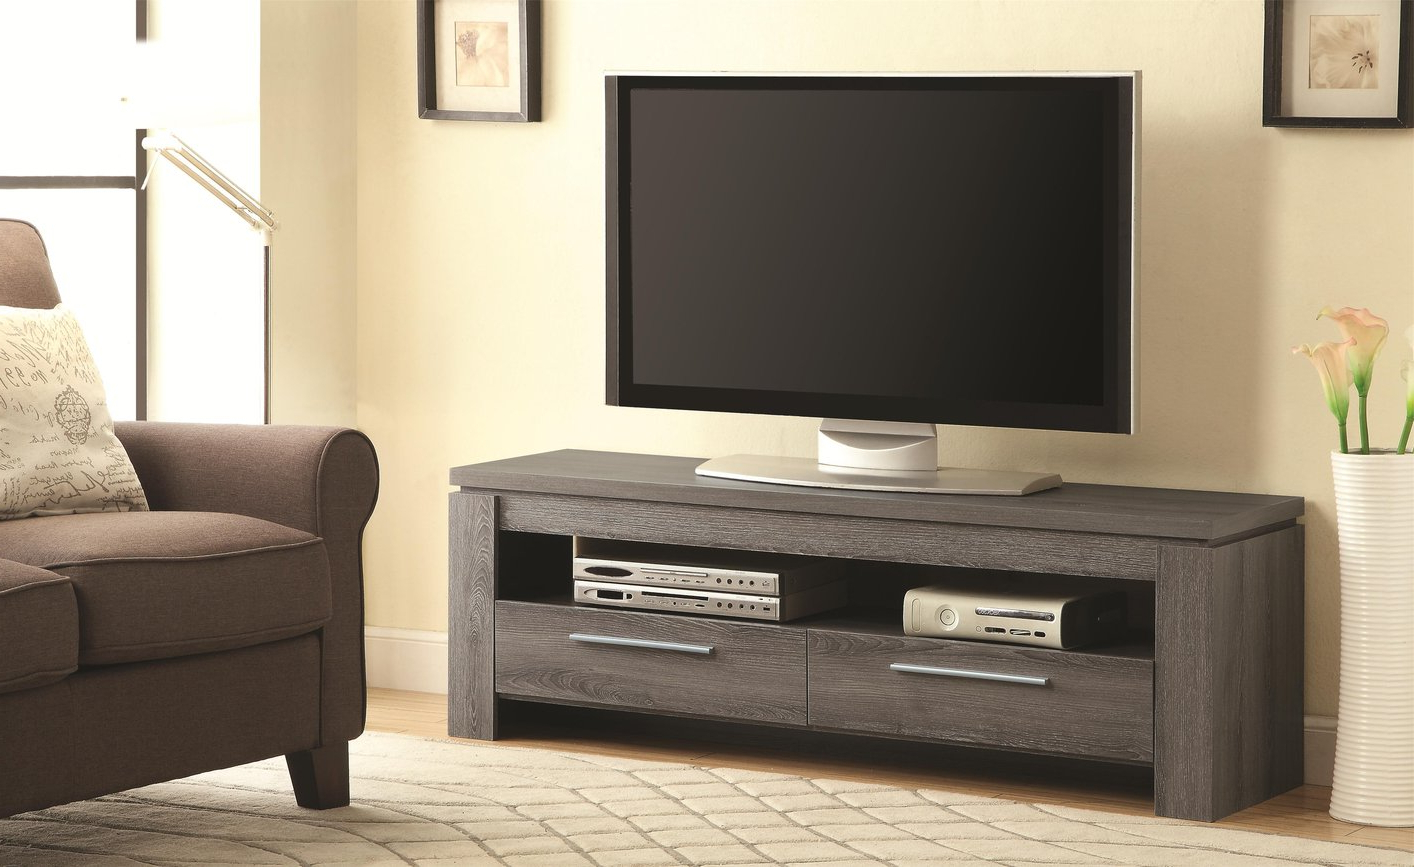 Grey Tv Stands With Regard To Popular Grey Wood Tv Stand – Steal A Sofa Furniture Outlet Los Angeles Ca (View 9 of 20)